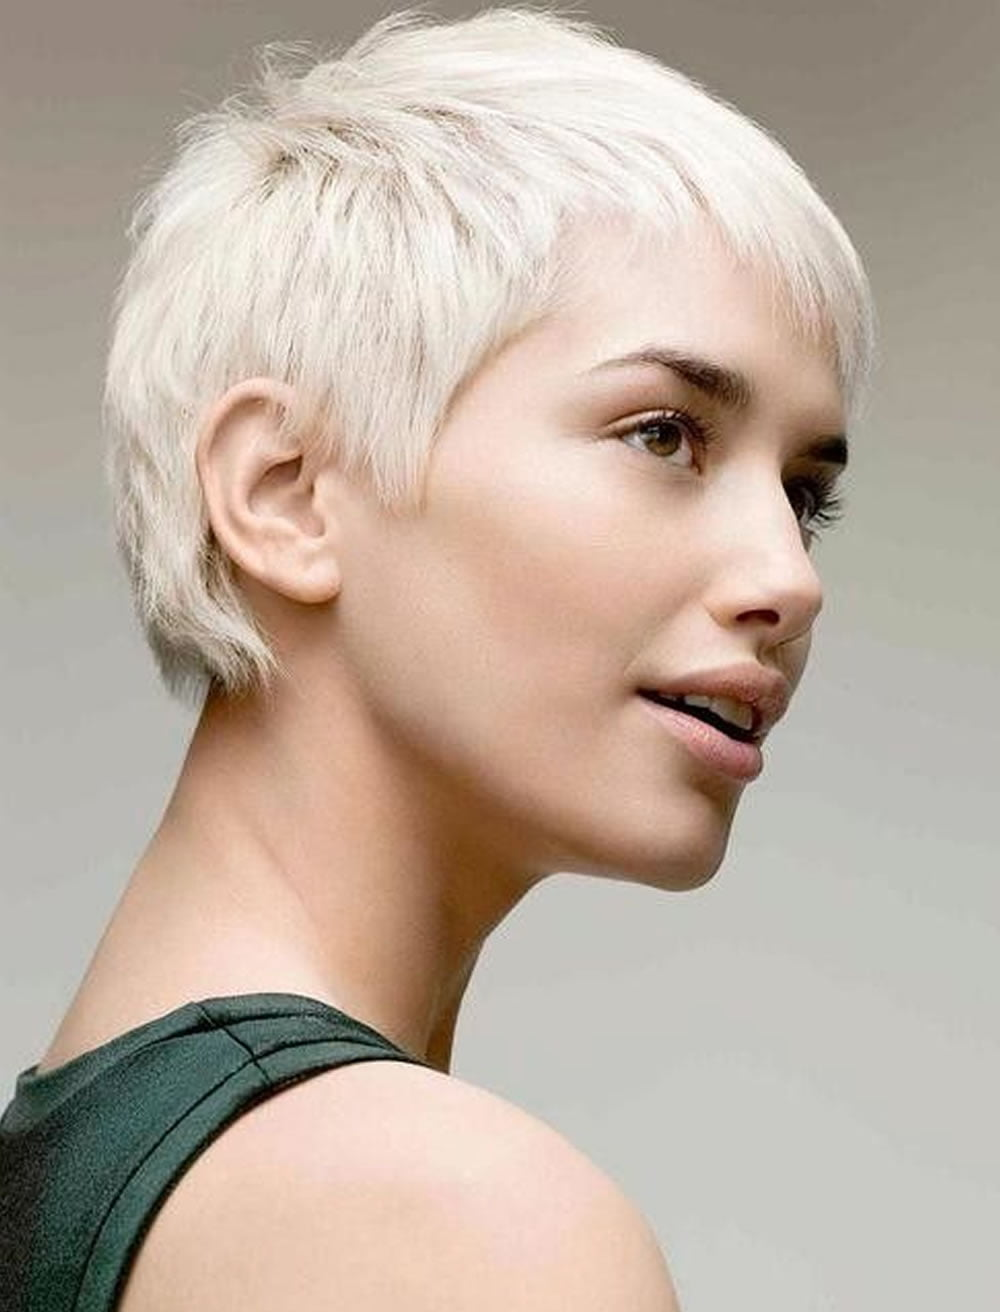 2018 Very Short Pixie Hairstyles Amp Haircuts Inspiration For Women Page 6 Of 10